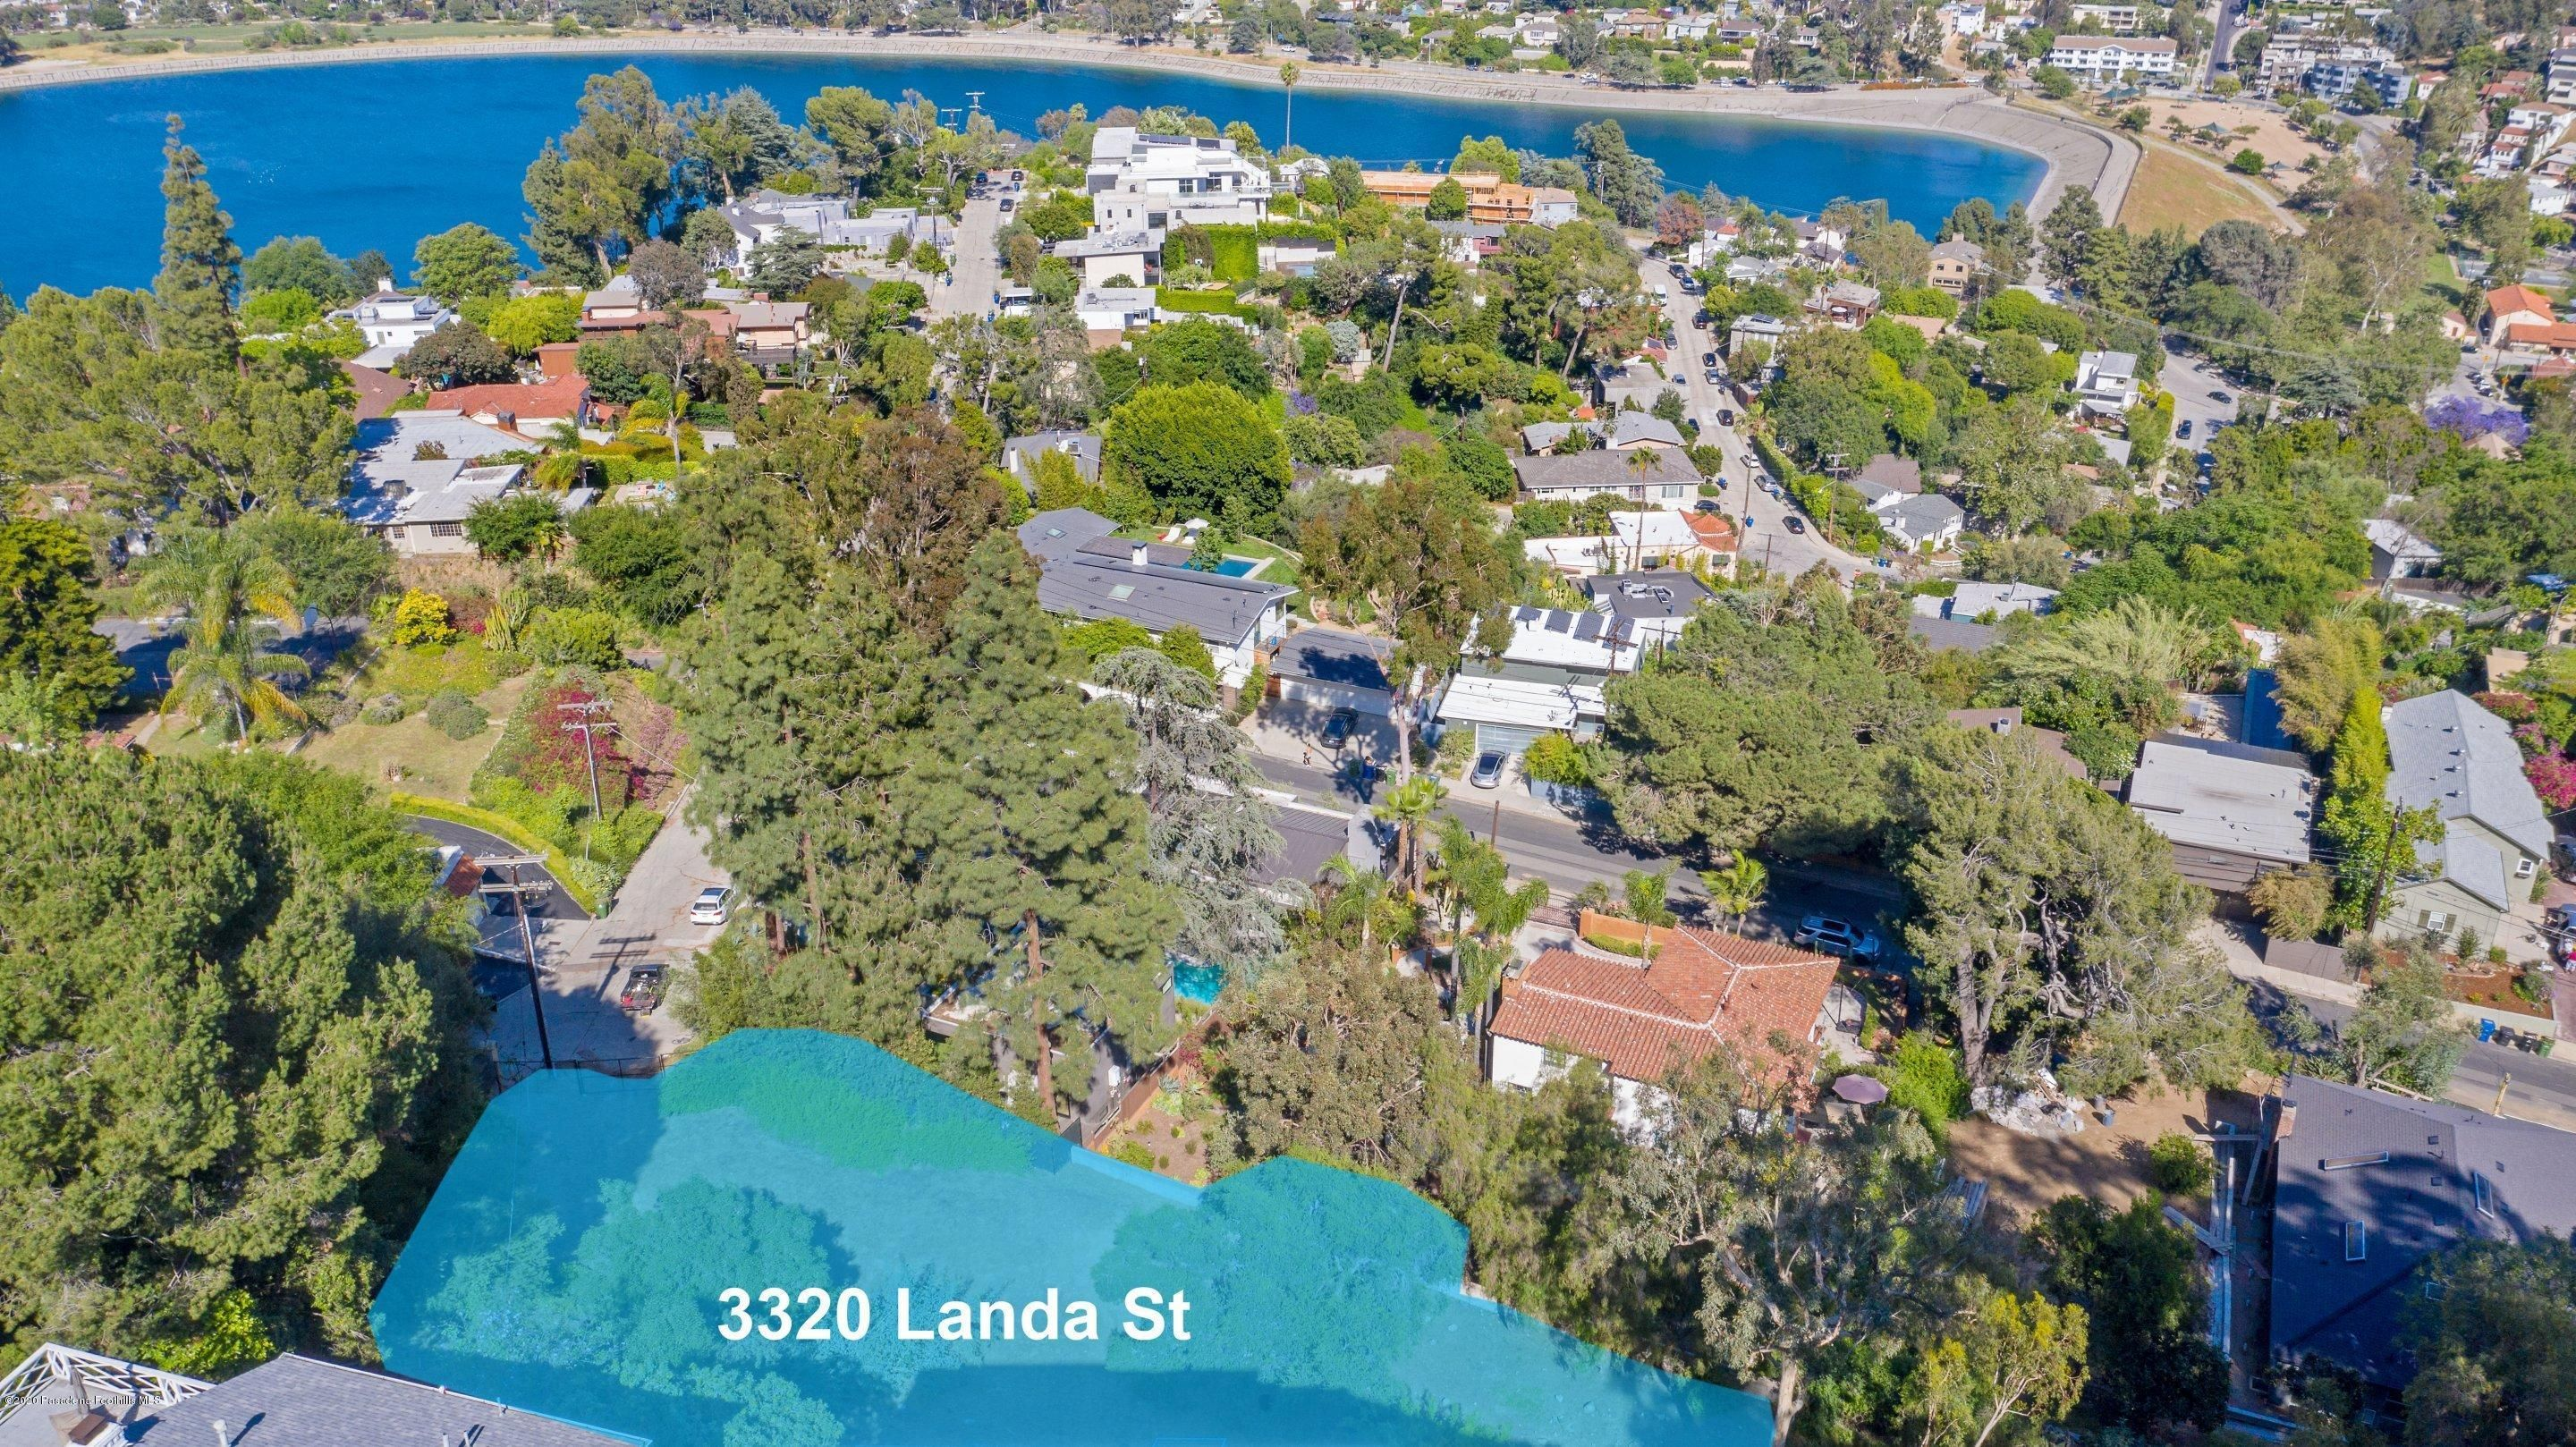 3320 Landa Street Silver Lake Ca Compass In 2020 Los Angeles Country Street City View